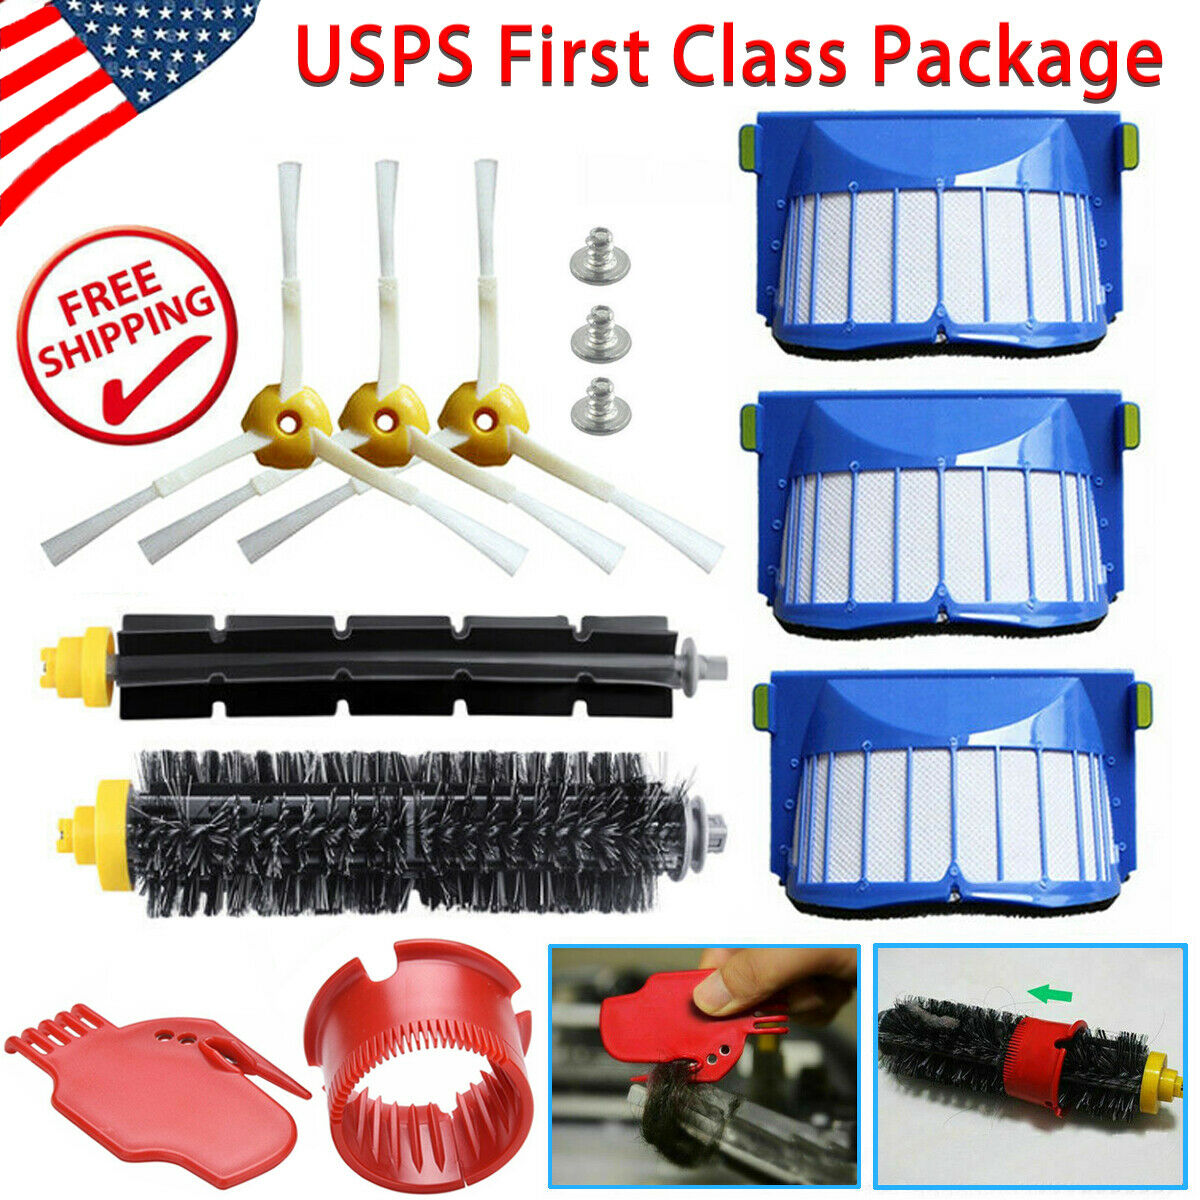 13x Replacement Accessories Kit for iRobot Roomba 600 Series Vacuum Cleaner P2G1